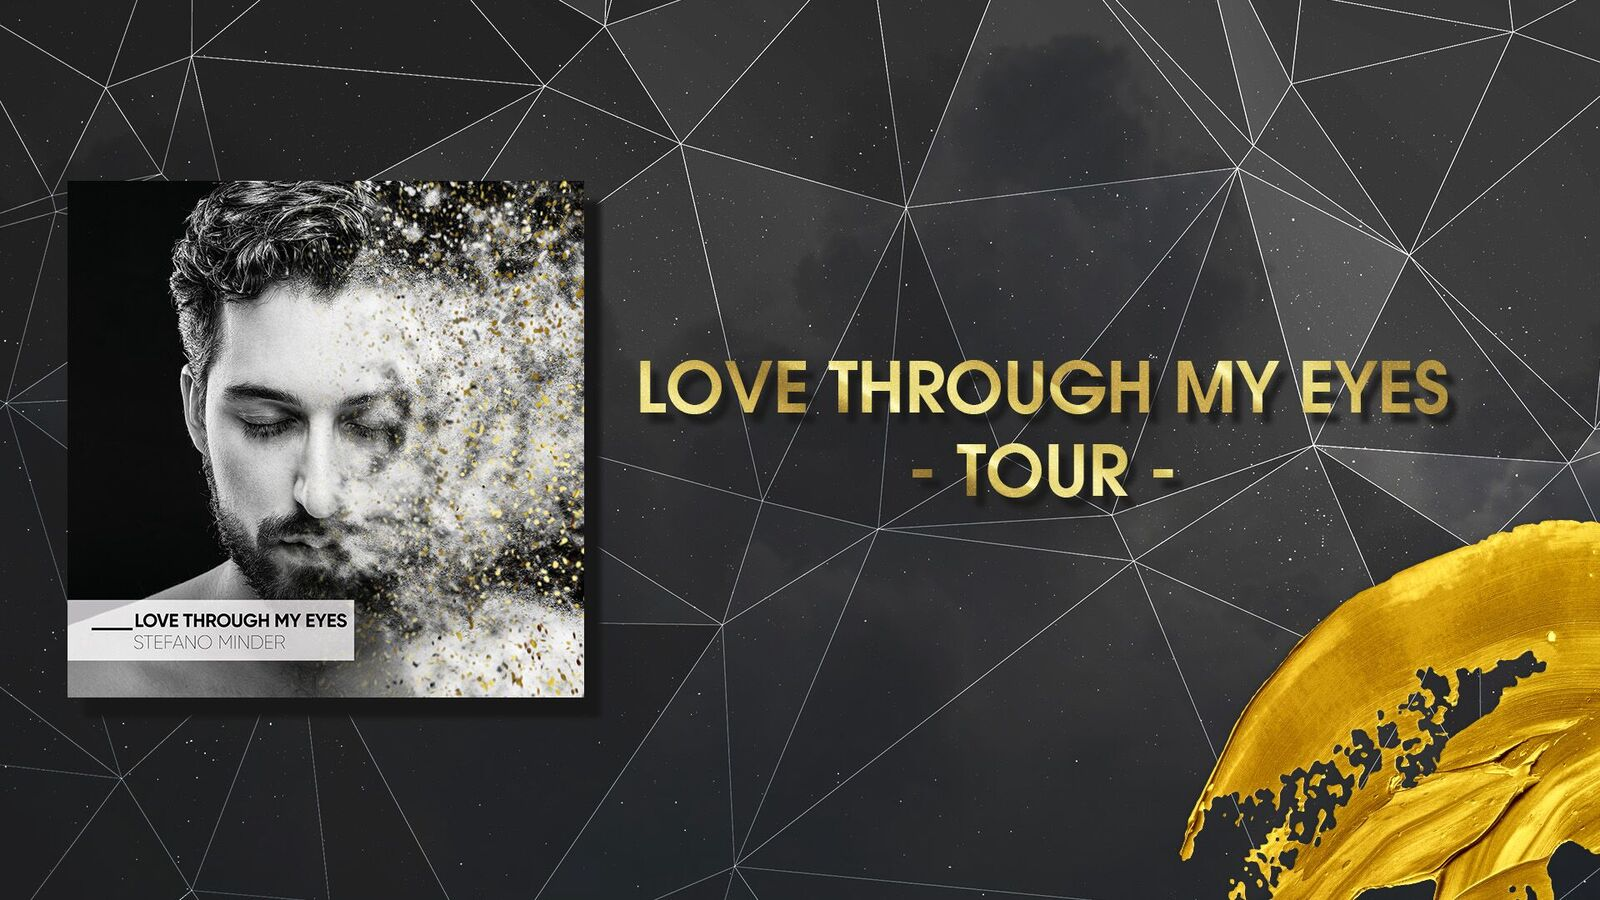 Love Through My Eyes - Tour